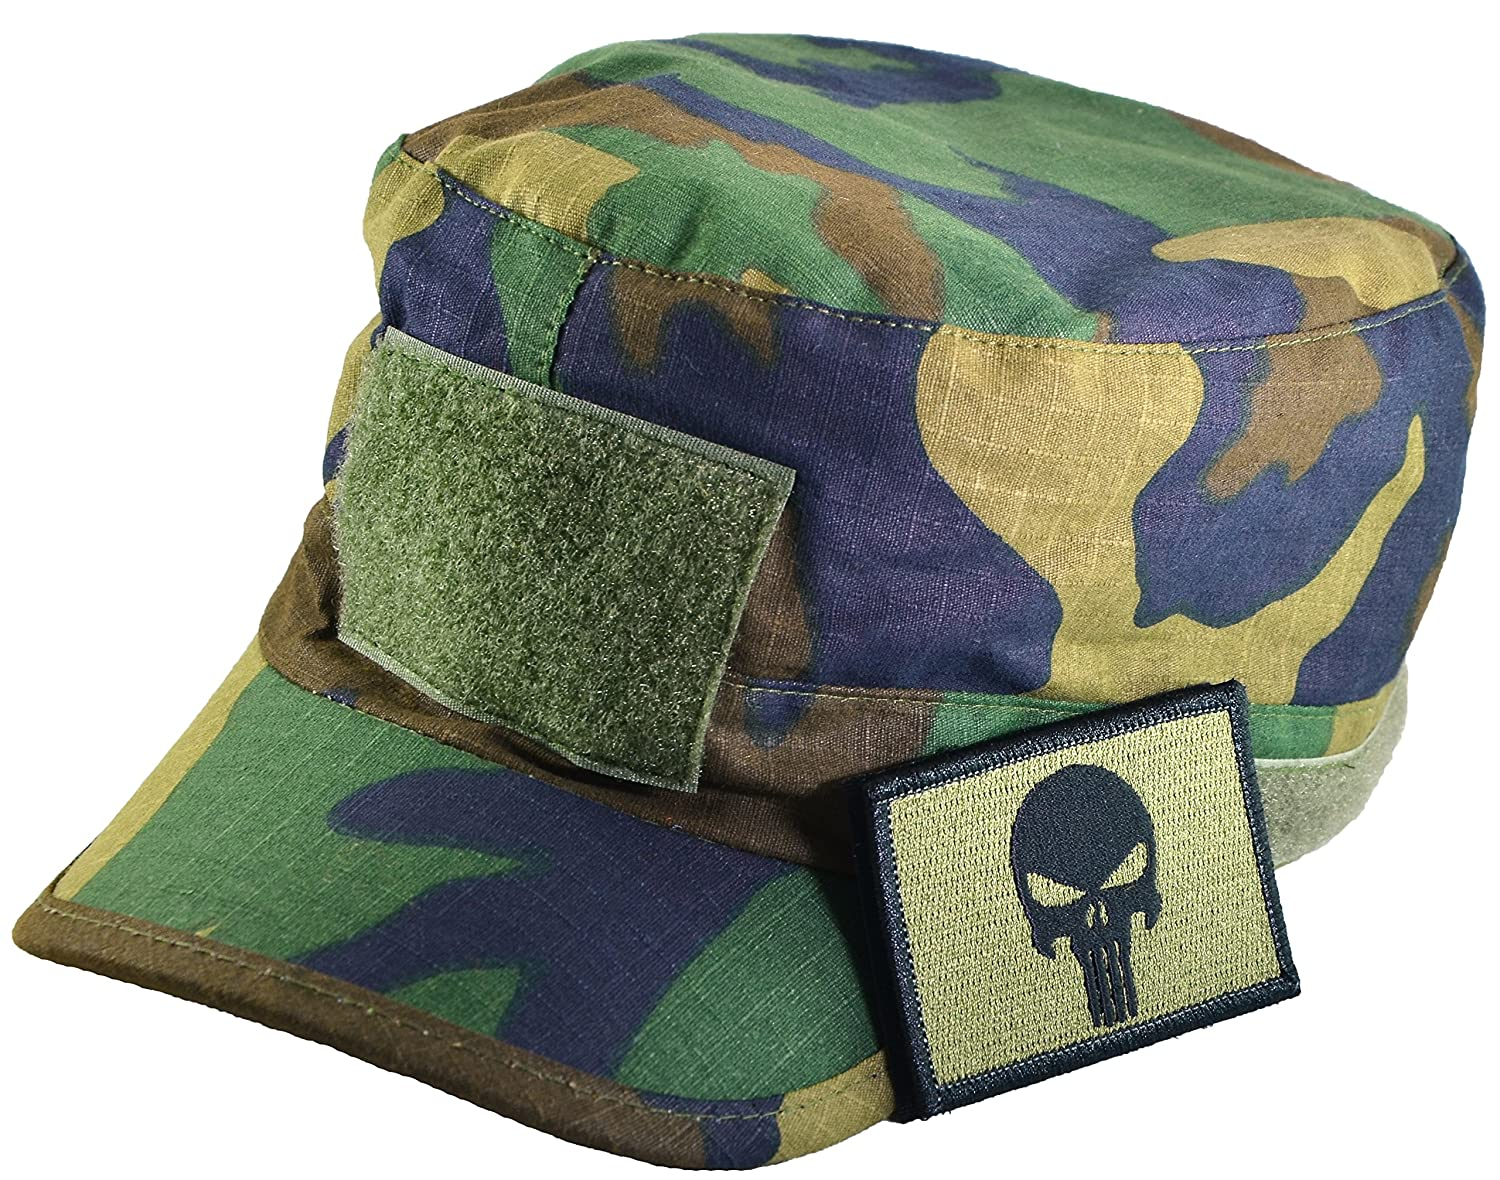 Tactical Woodland Military Camo Army Camouflage Adjustable Patrol Fatigue  Cap with Tactical Morale Operator Skull Patch - Olive Drab  (FCAP-WOOD-WPUN-OD) 54f0d3f373